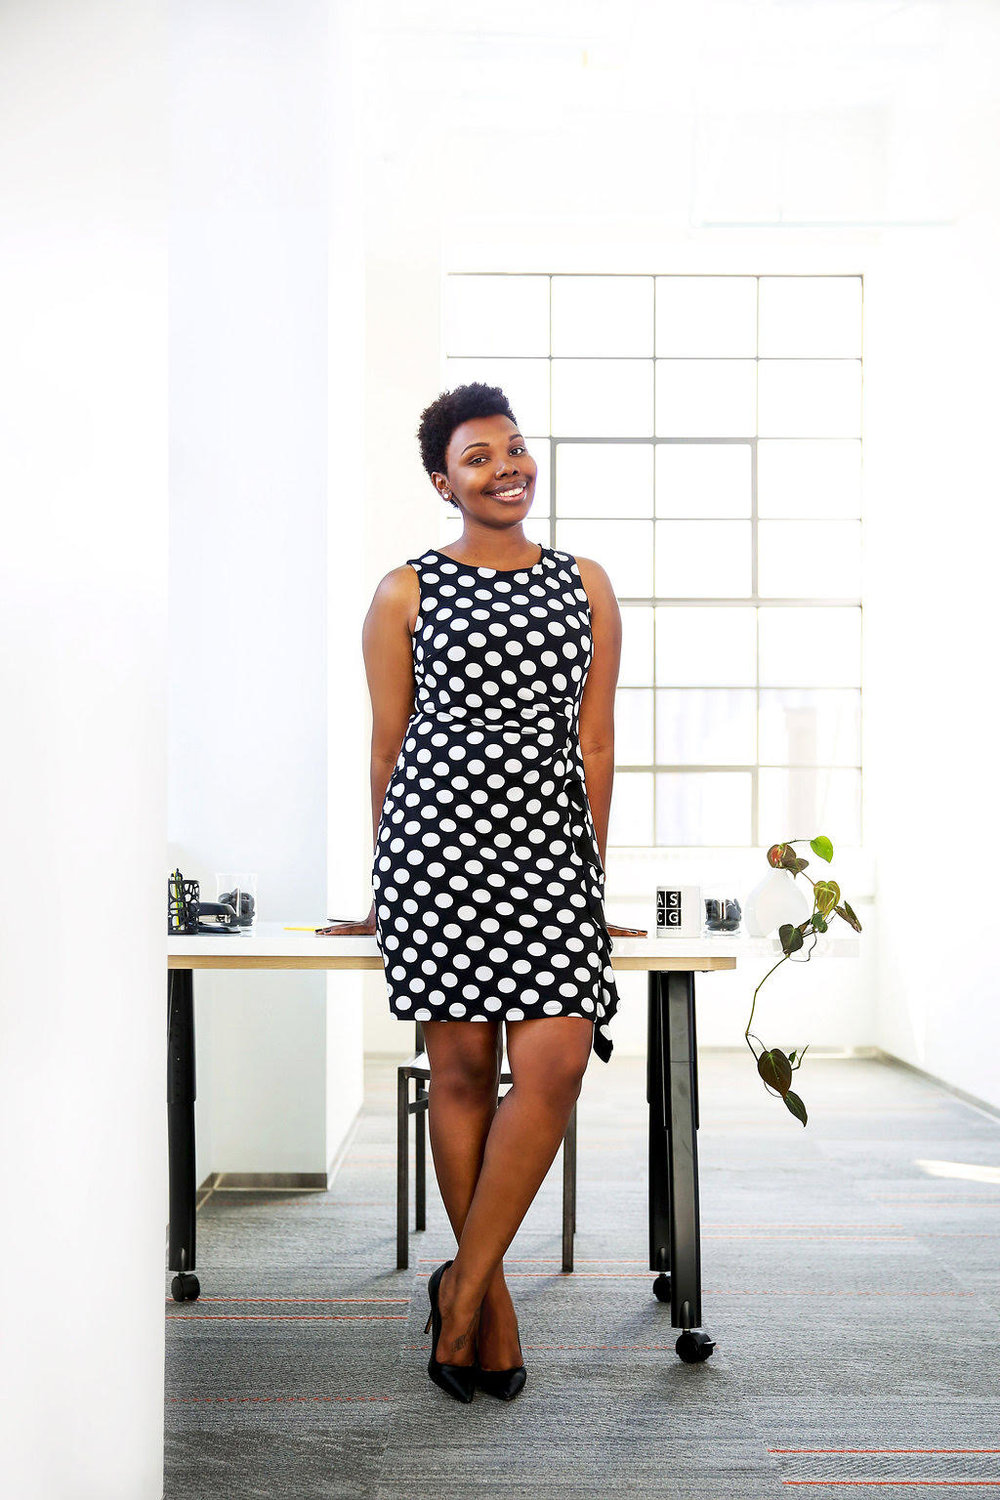 An interview with Chief Marketing Strategist, Aleshia S. Patterson of the Aleshia Simone Consulting Group